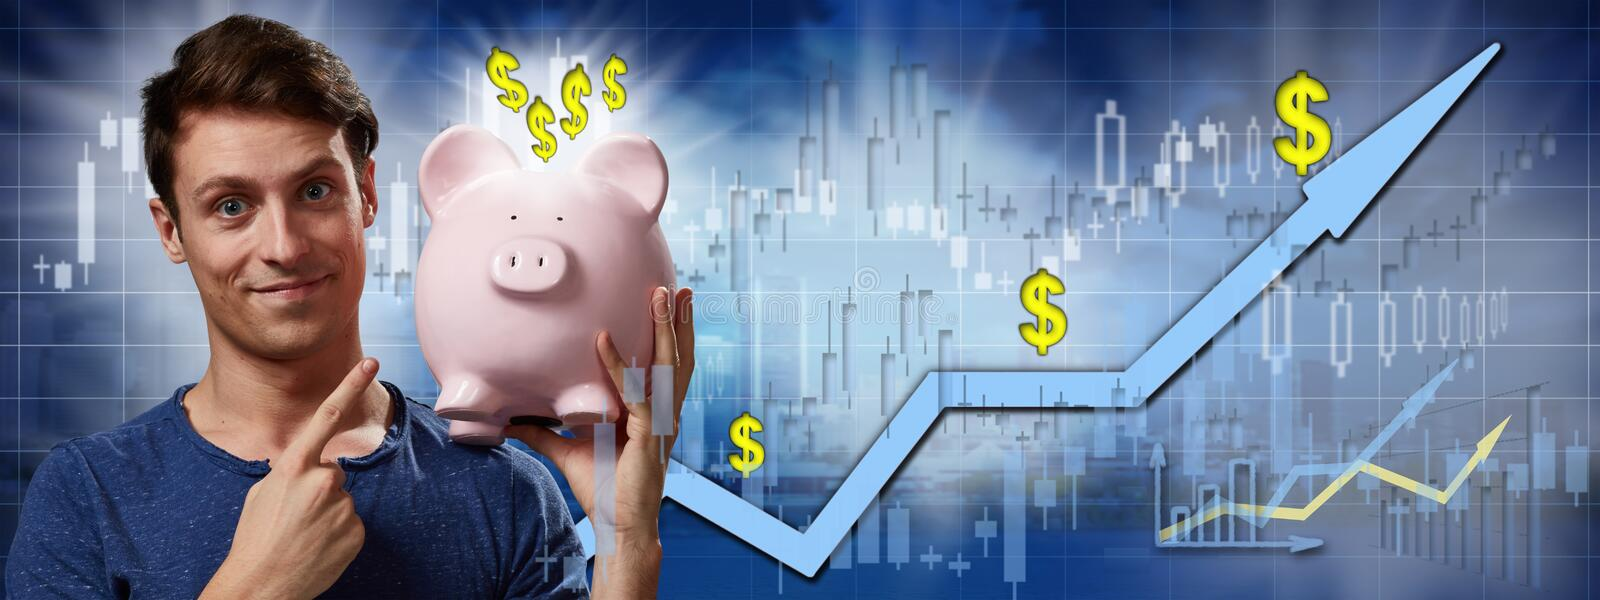 Happy investor man. stock images